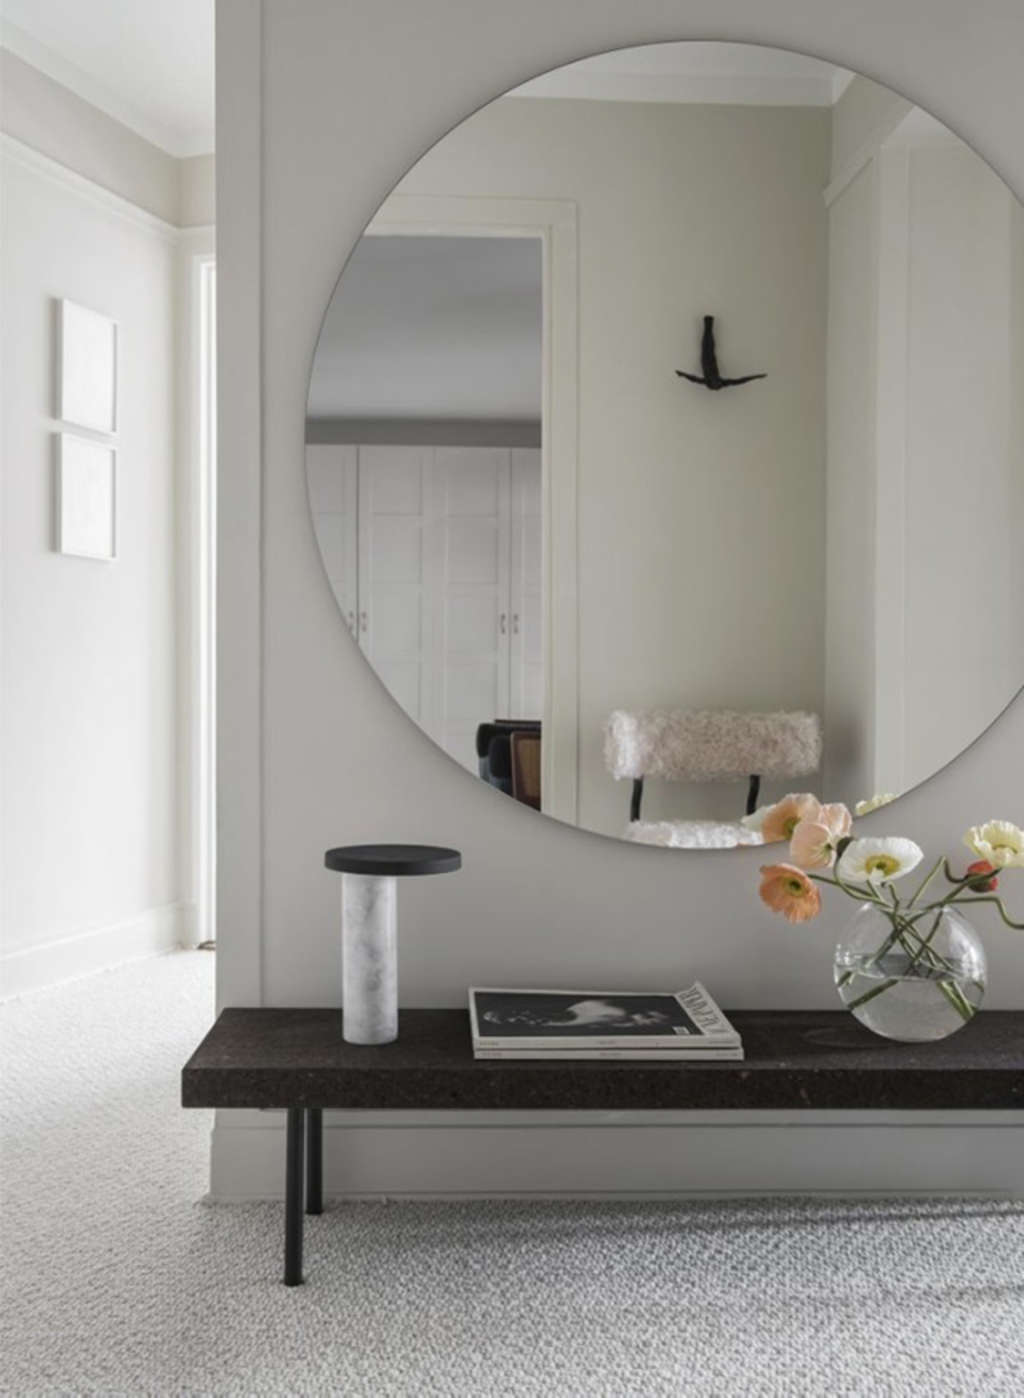 Entryway Design Ideas to Add Personality